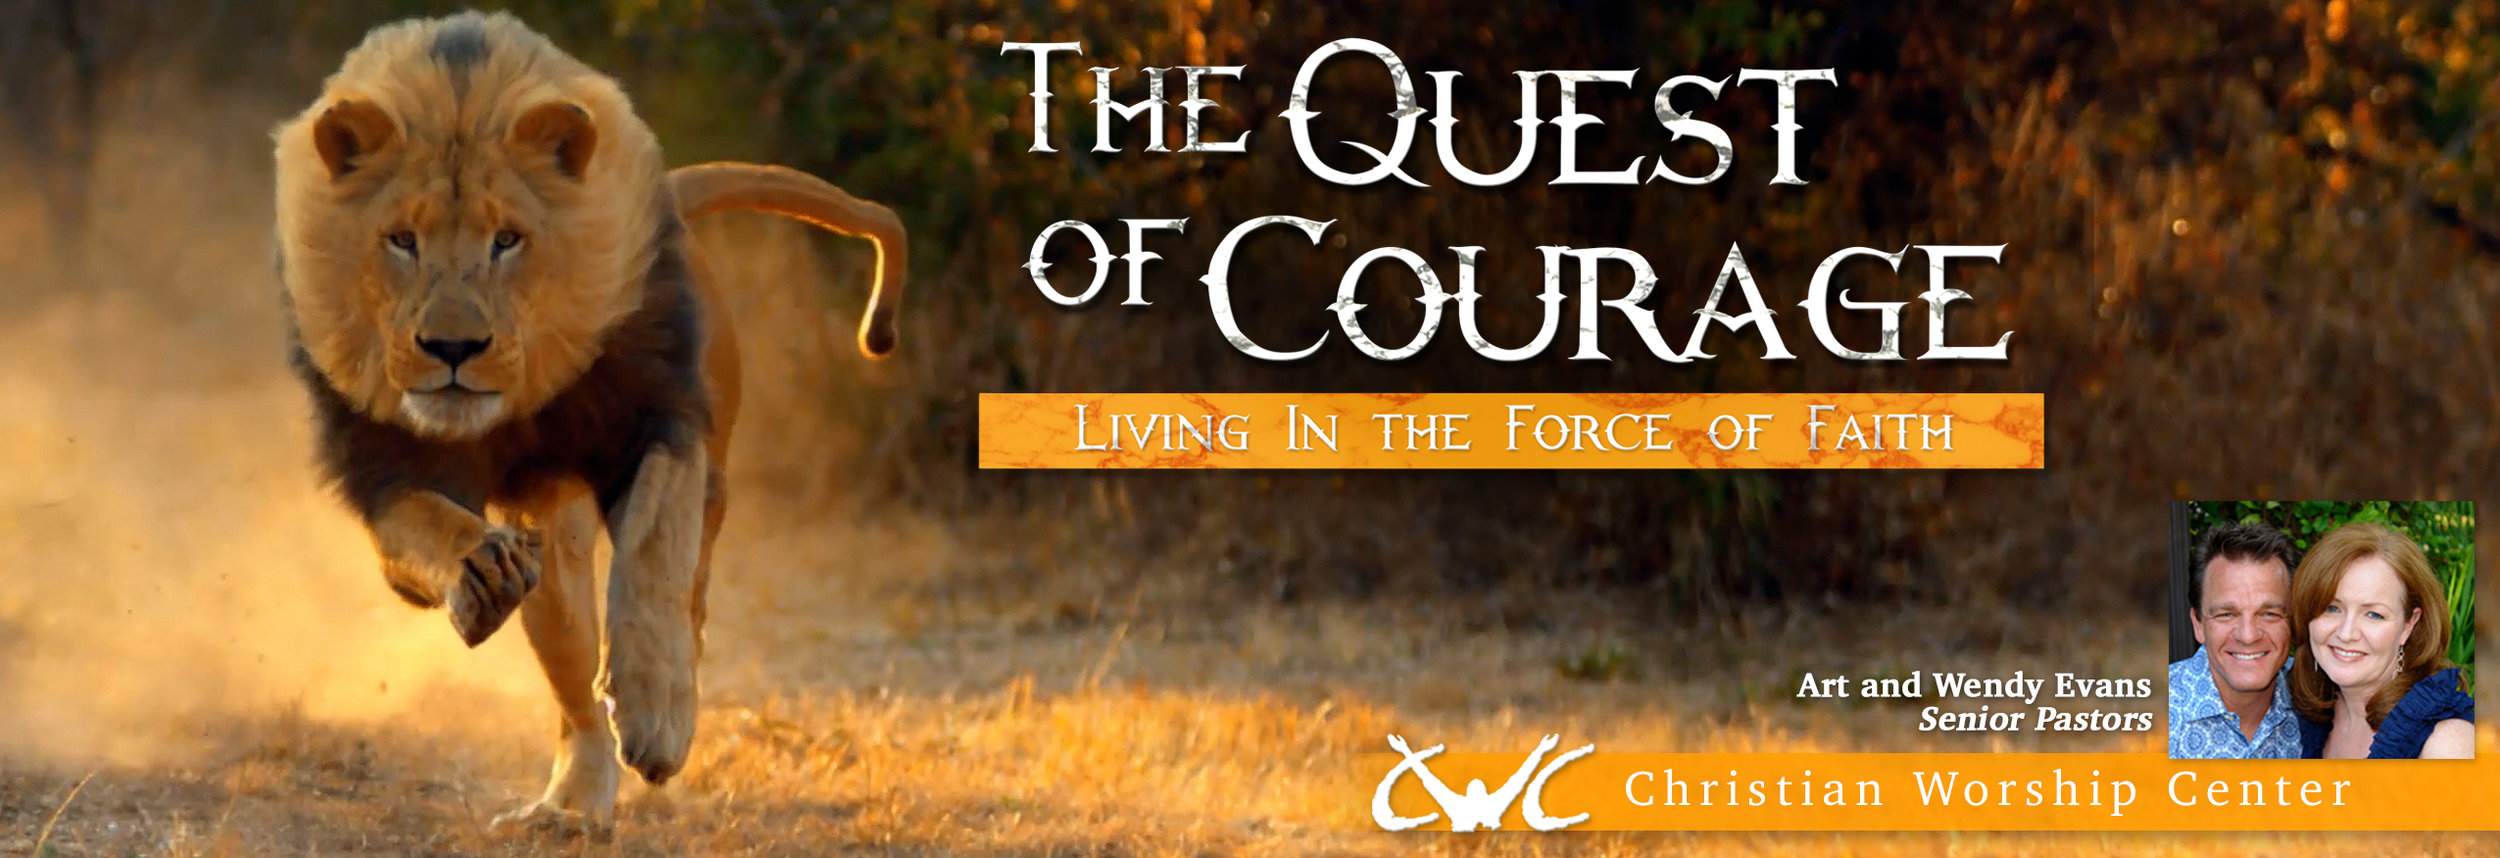 The Quest of Courage Facebook and Blog Banner3.jpg